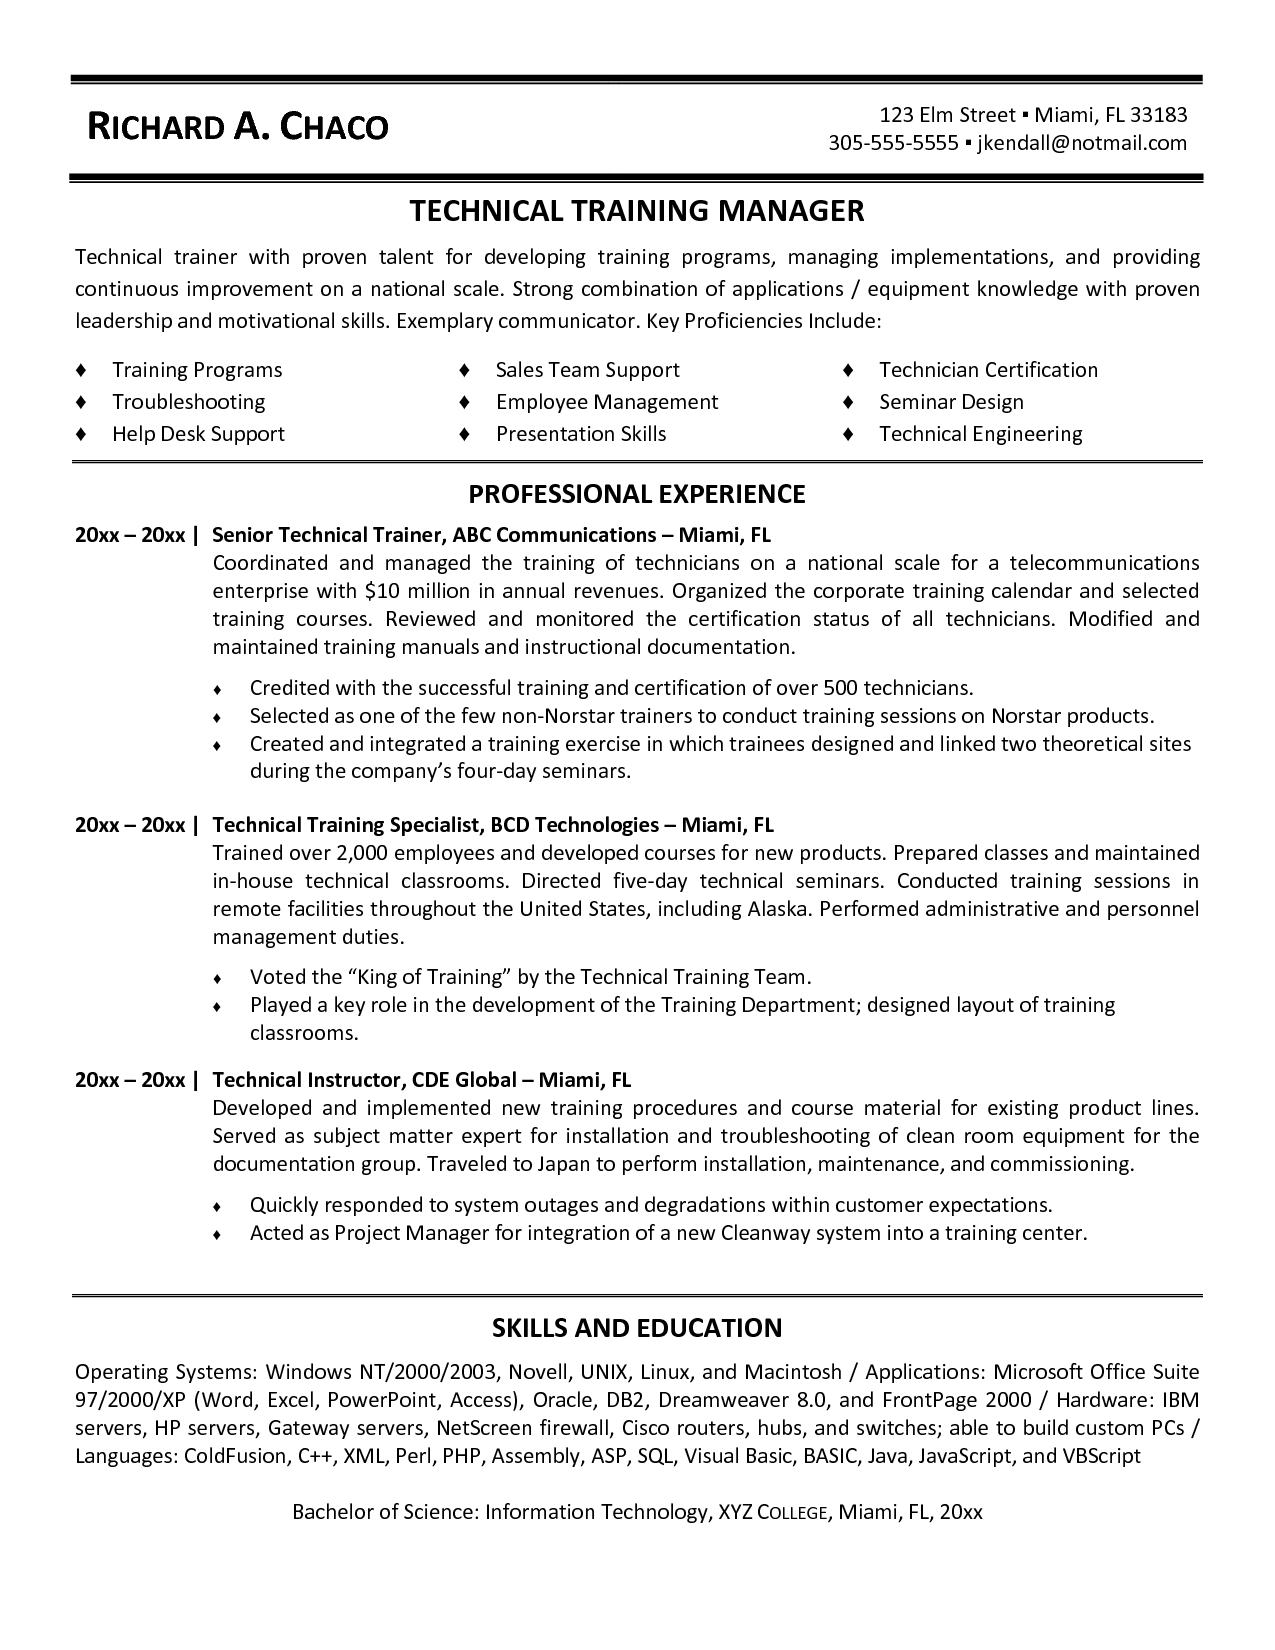 Server Skills Resume Impressive Sample Admin Resume Pdf Systems Administrator System Samples Sql 2018